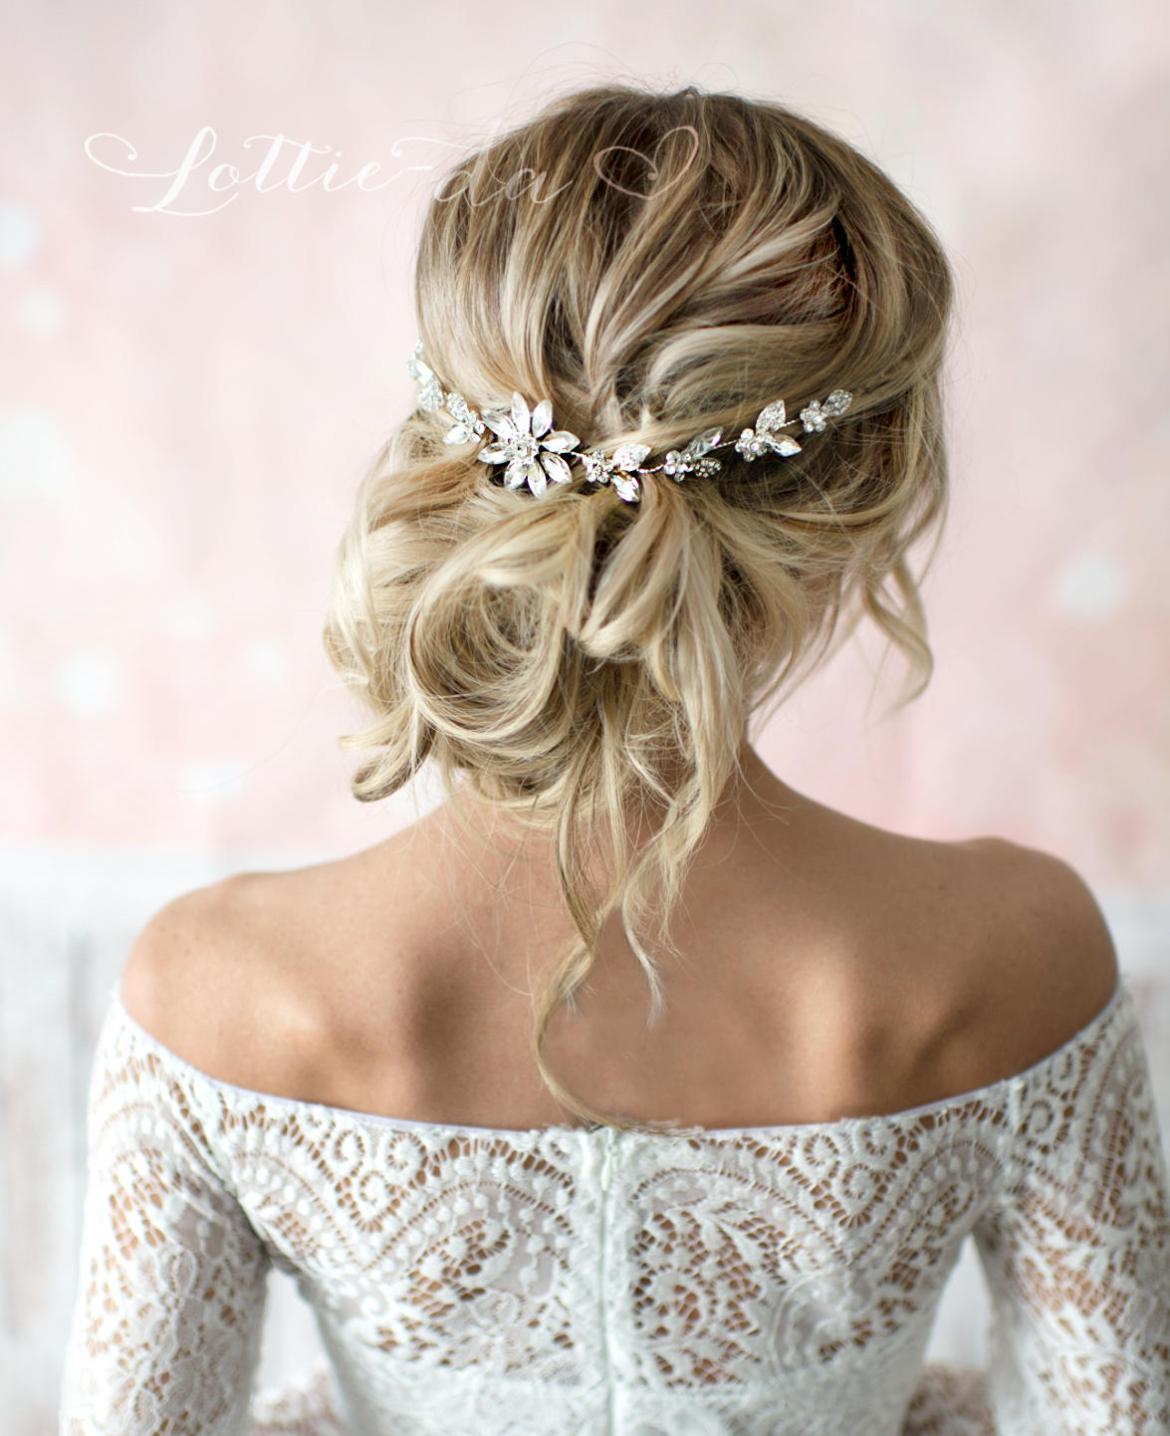 Flower Wedding Headpieces: Bridal Headpieces: Where To Buy Gorgeous Wedding